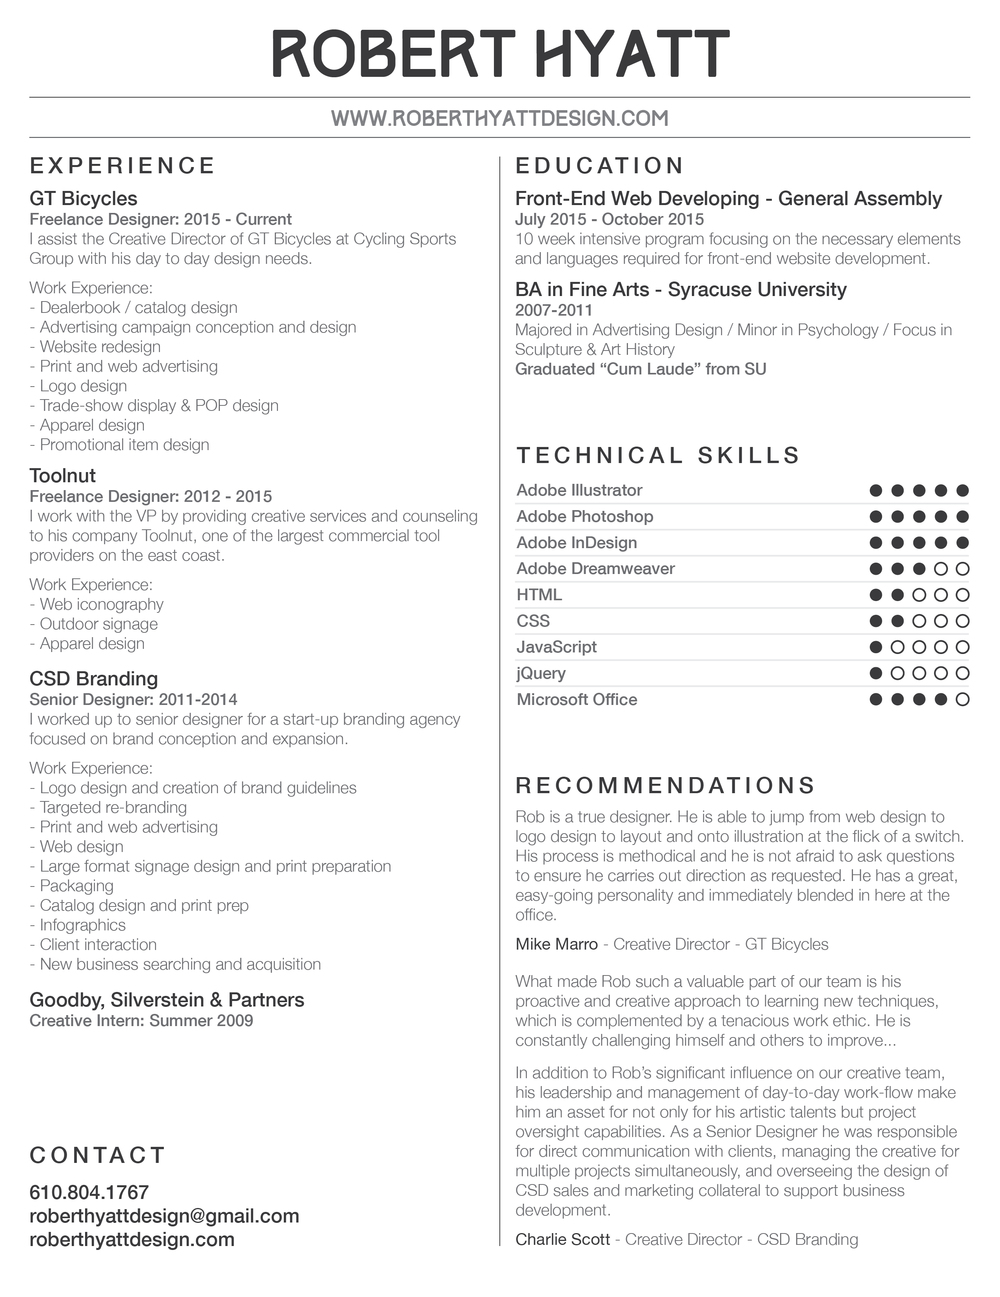 Robert Hyatt Resume